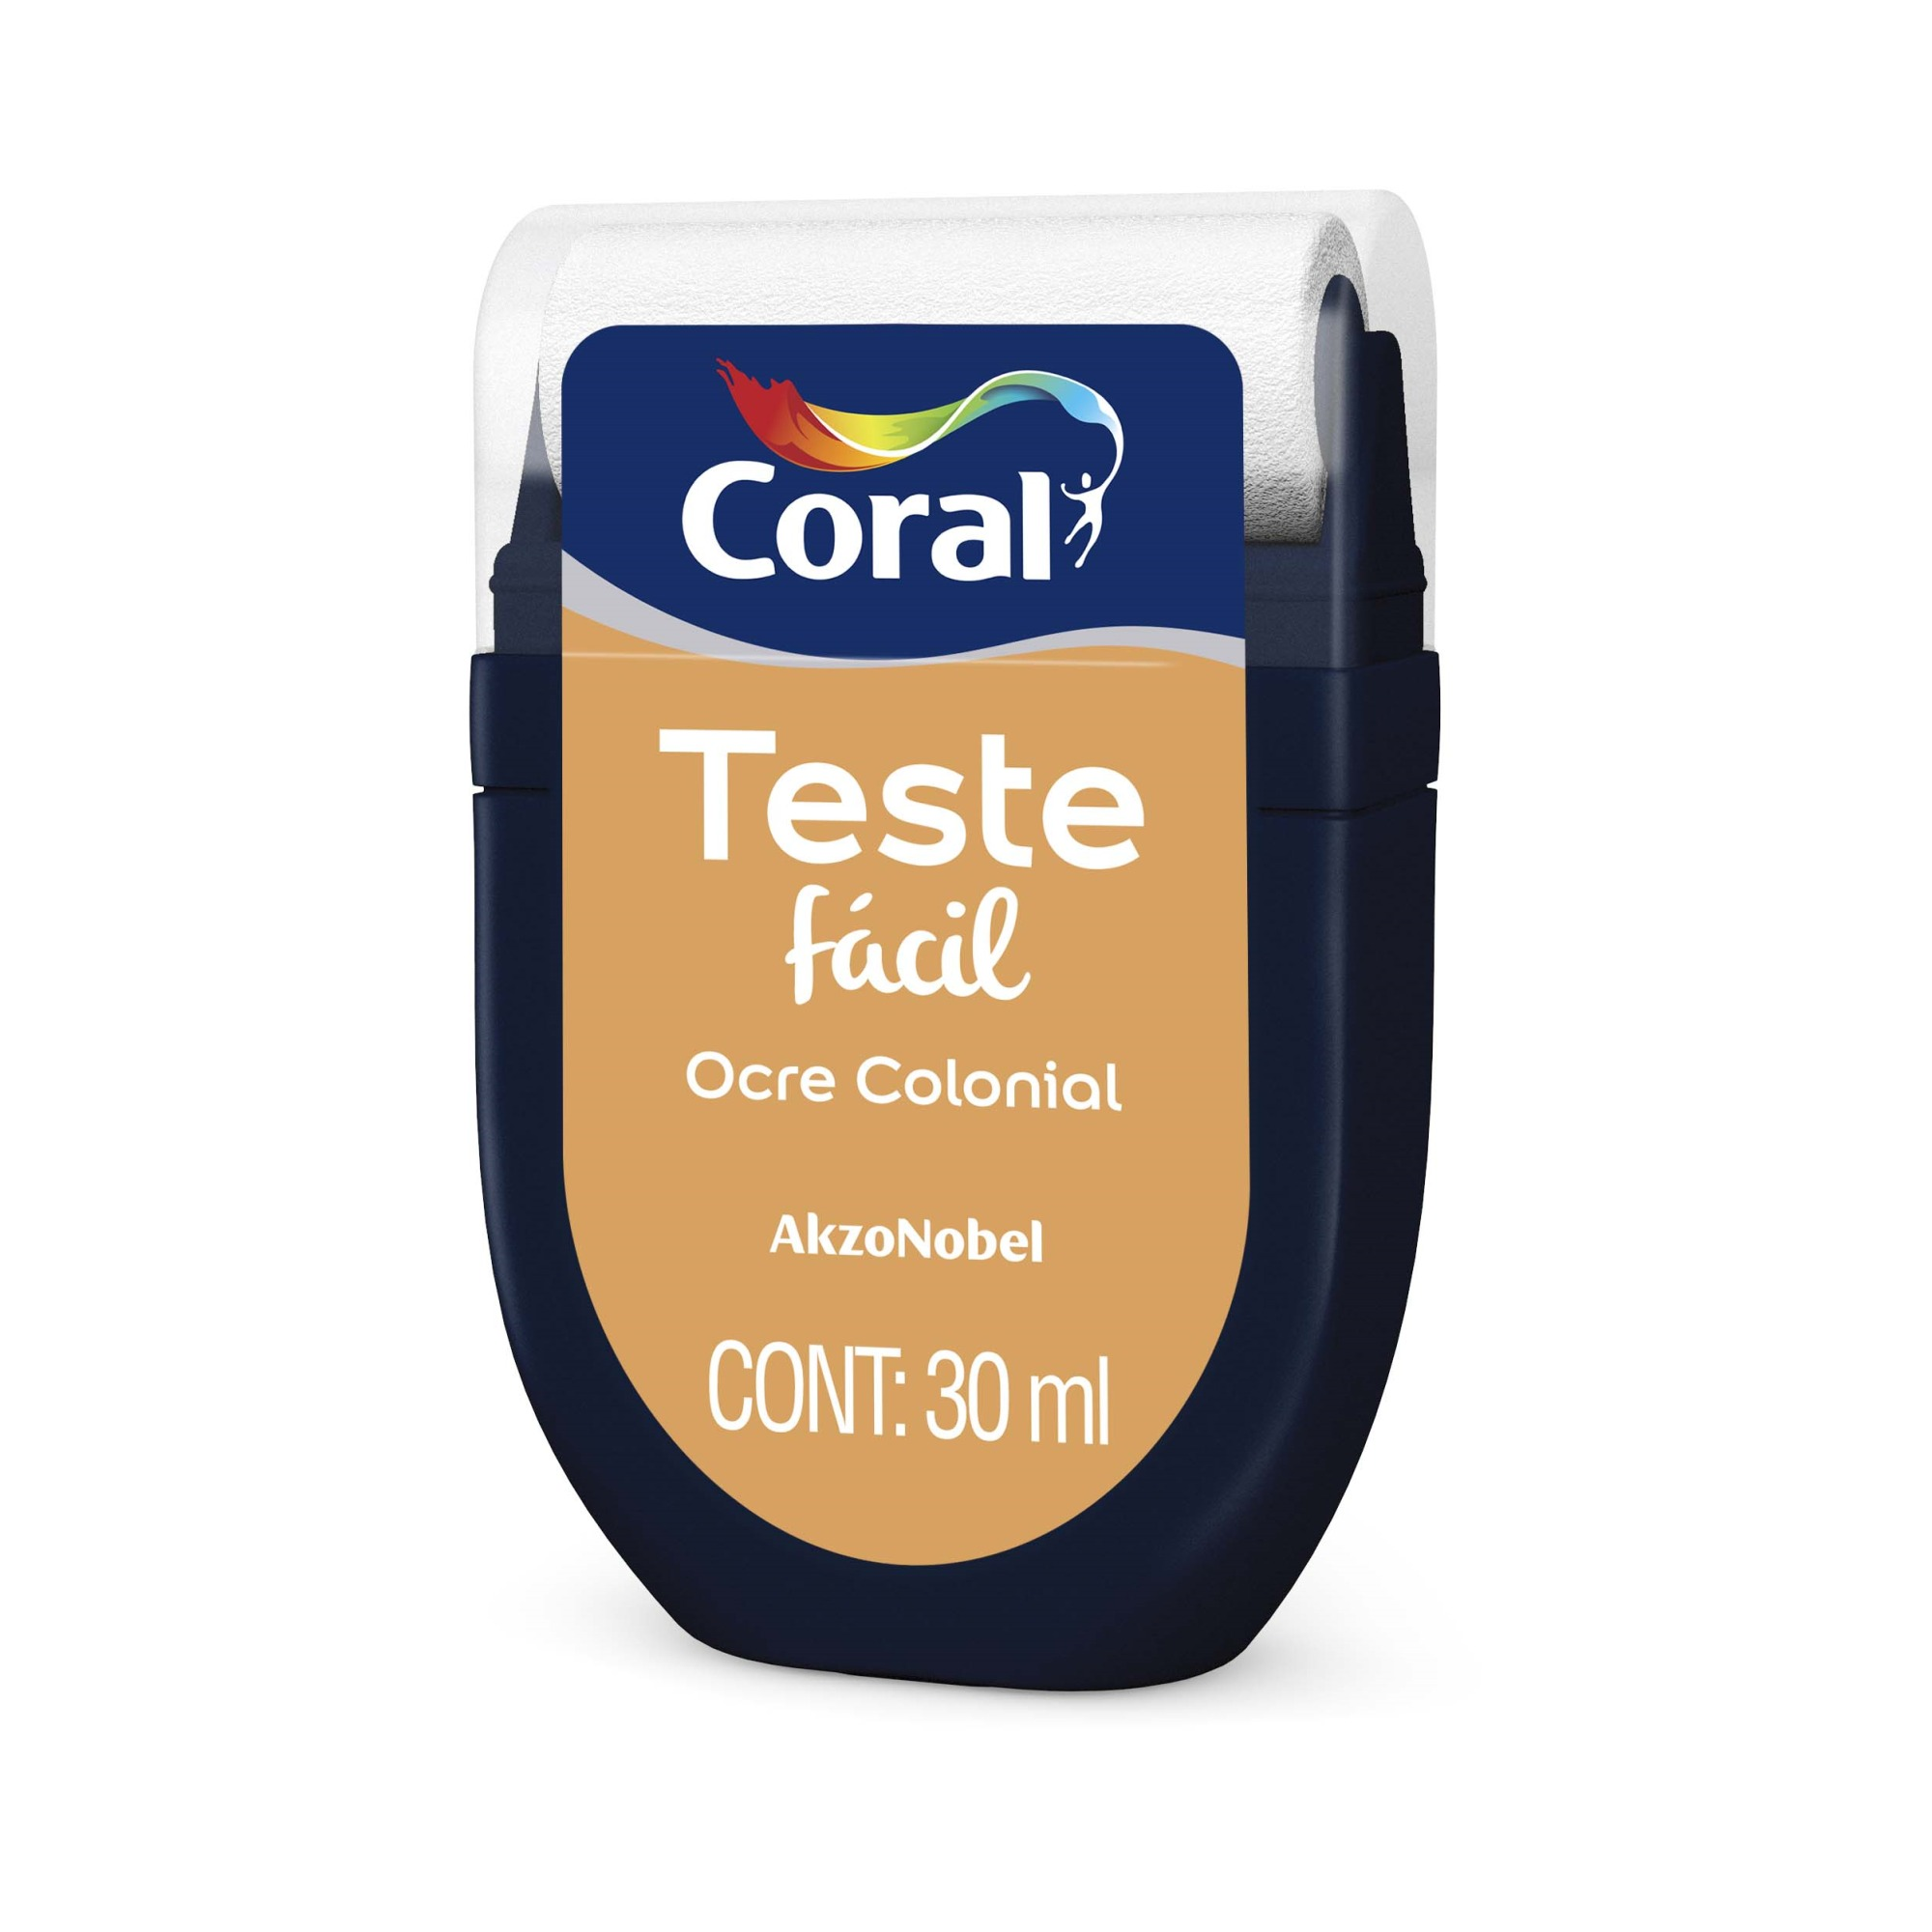 Teste Facil 30ml Ocre Colonial - Coral